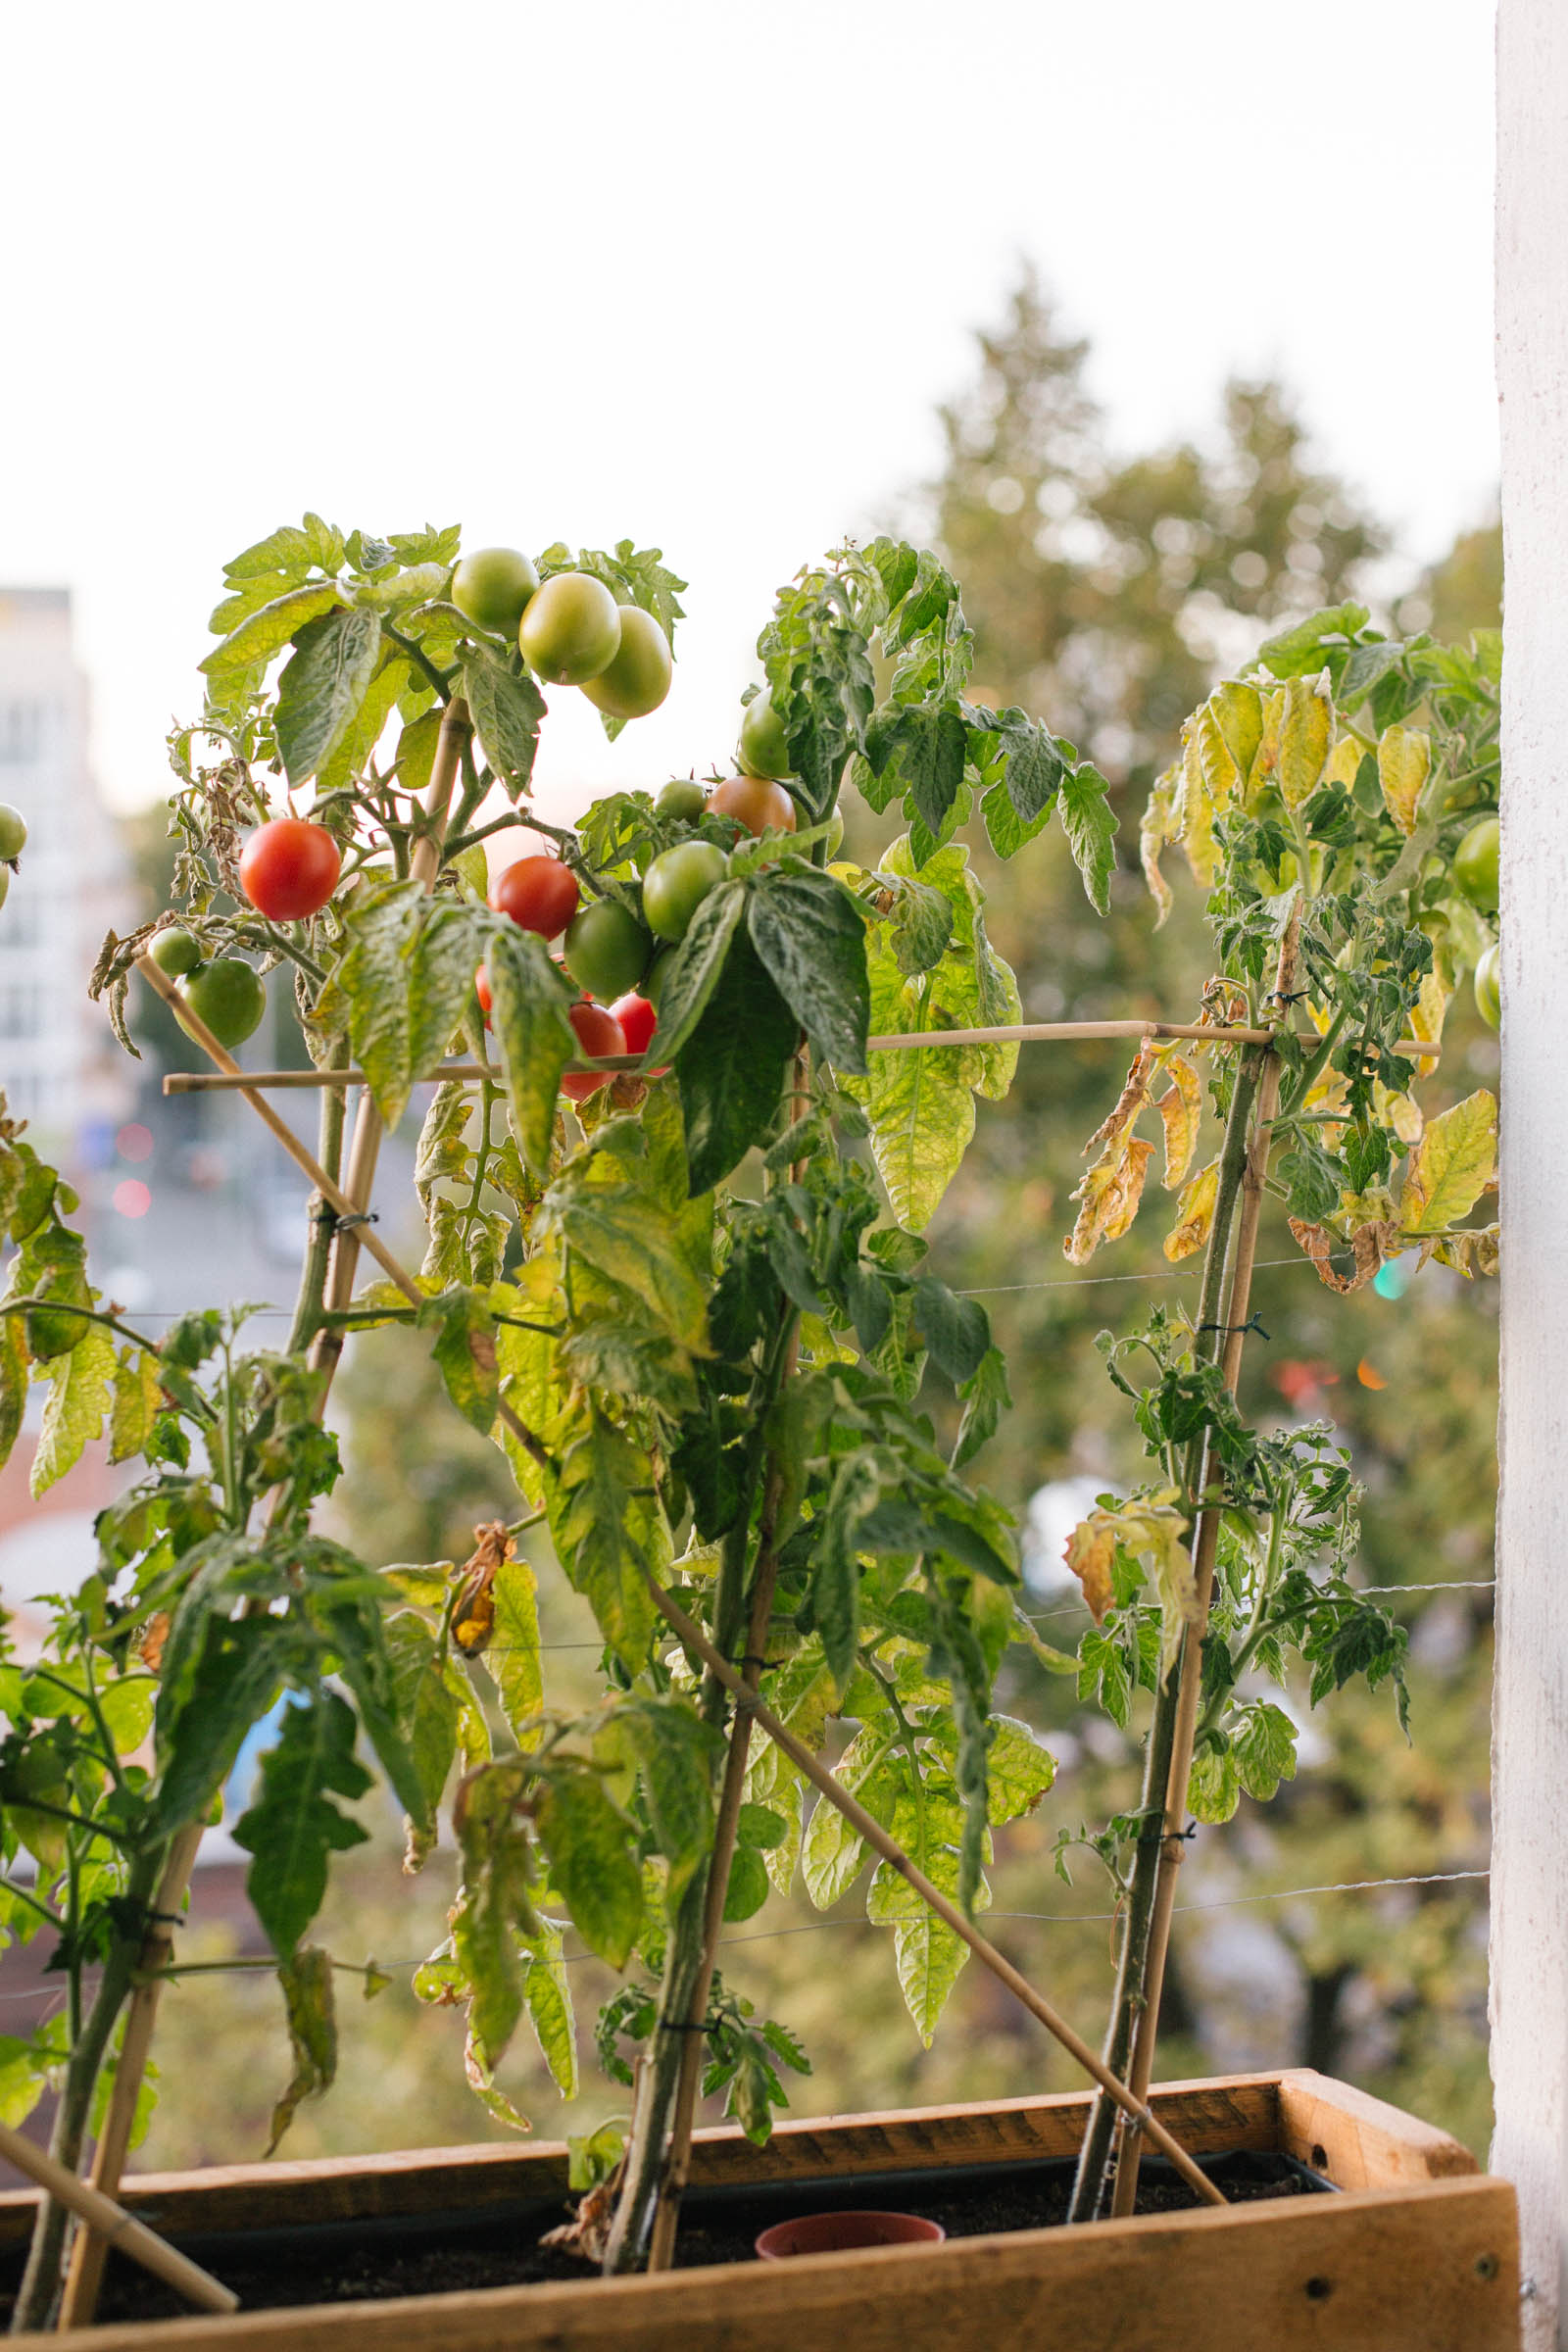 October 2015: The ensuing cold means the tomato leaves are slowly wilting and the fruits don't ripen anymore.